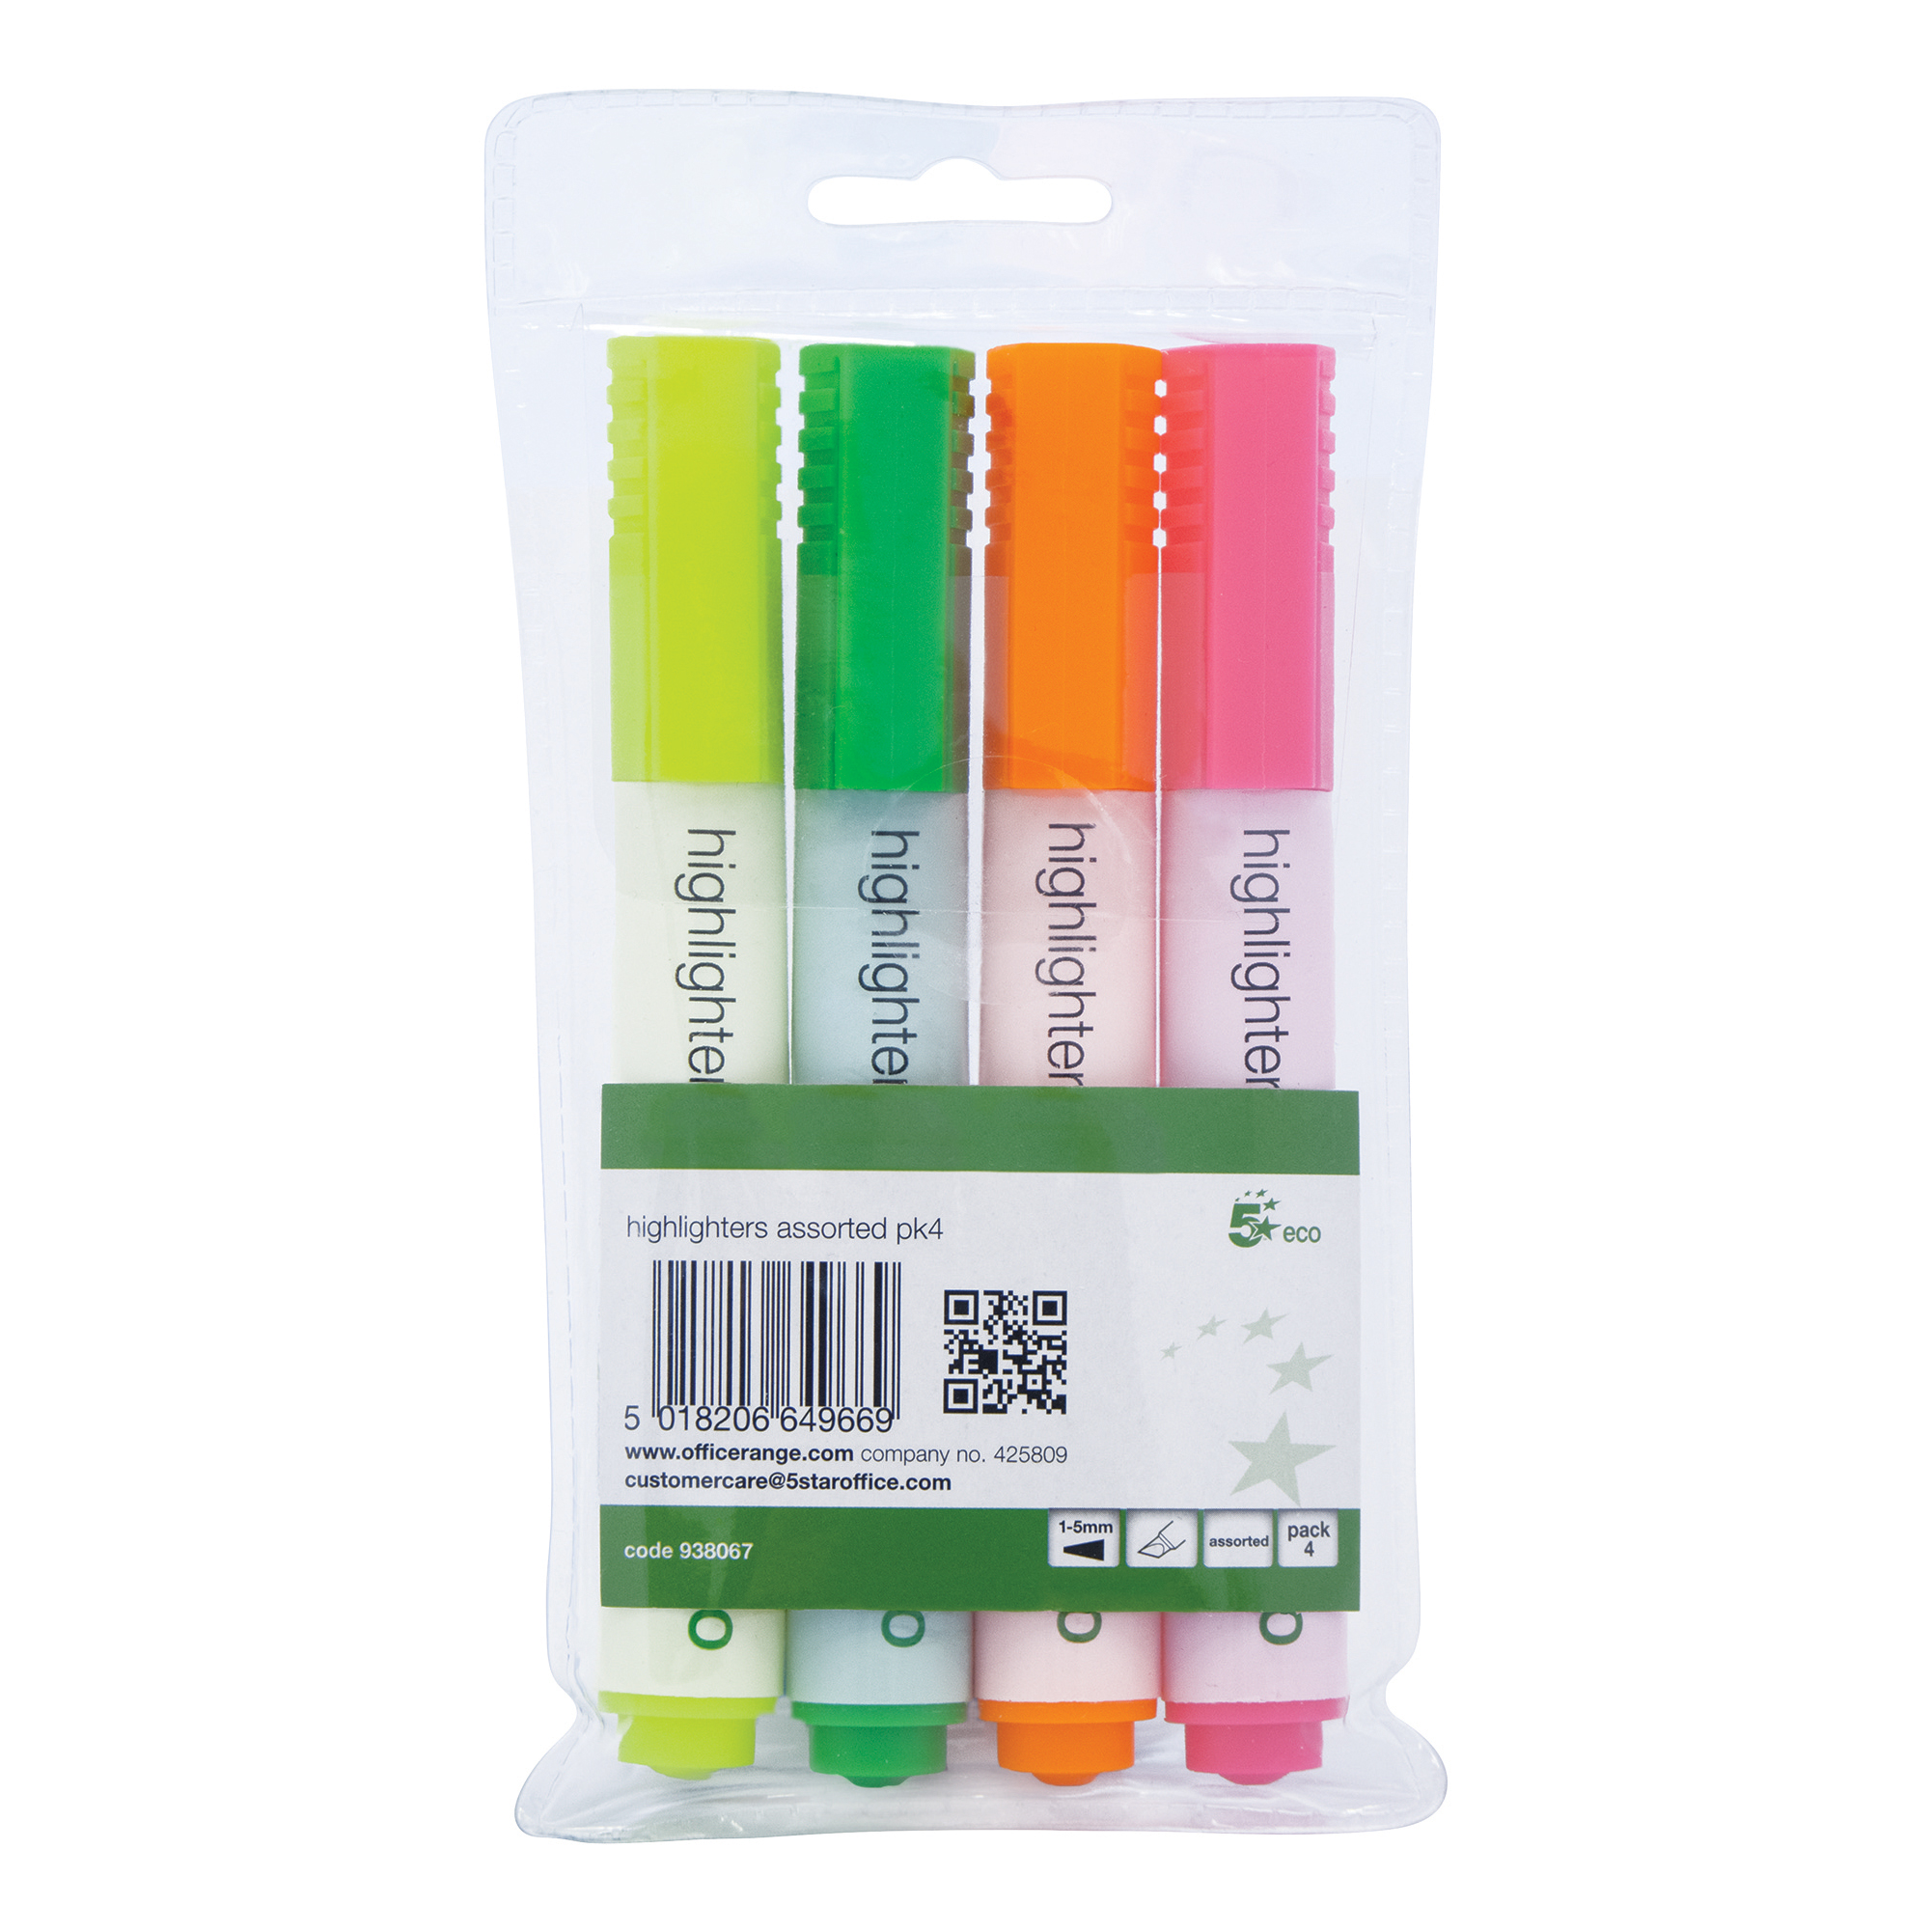 Image for 5 Star Eco Highlighter 1-5mm Line Assorted [Wallet 4]